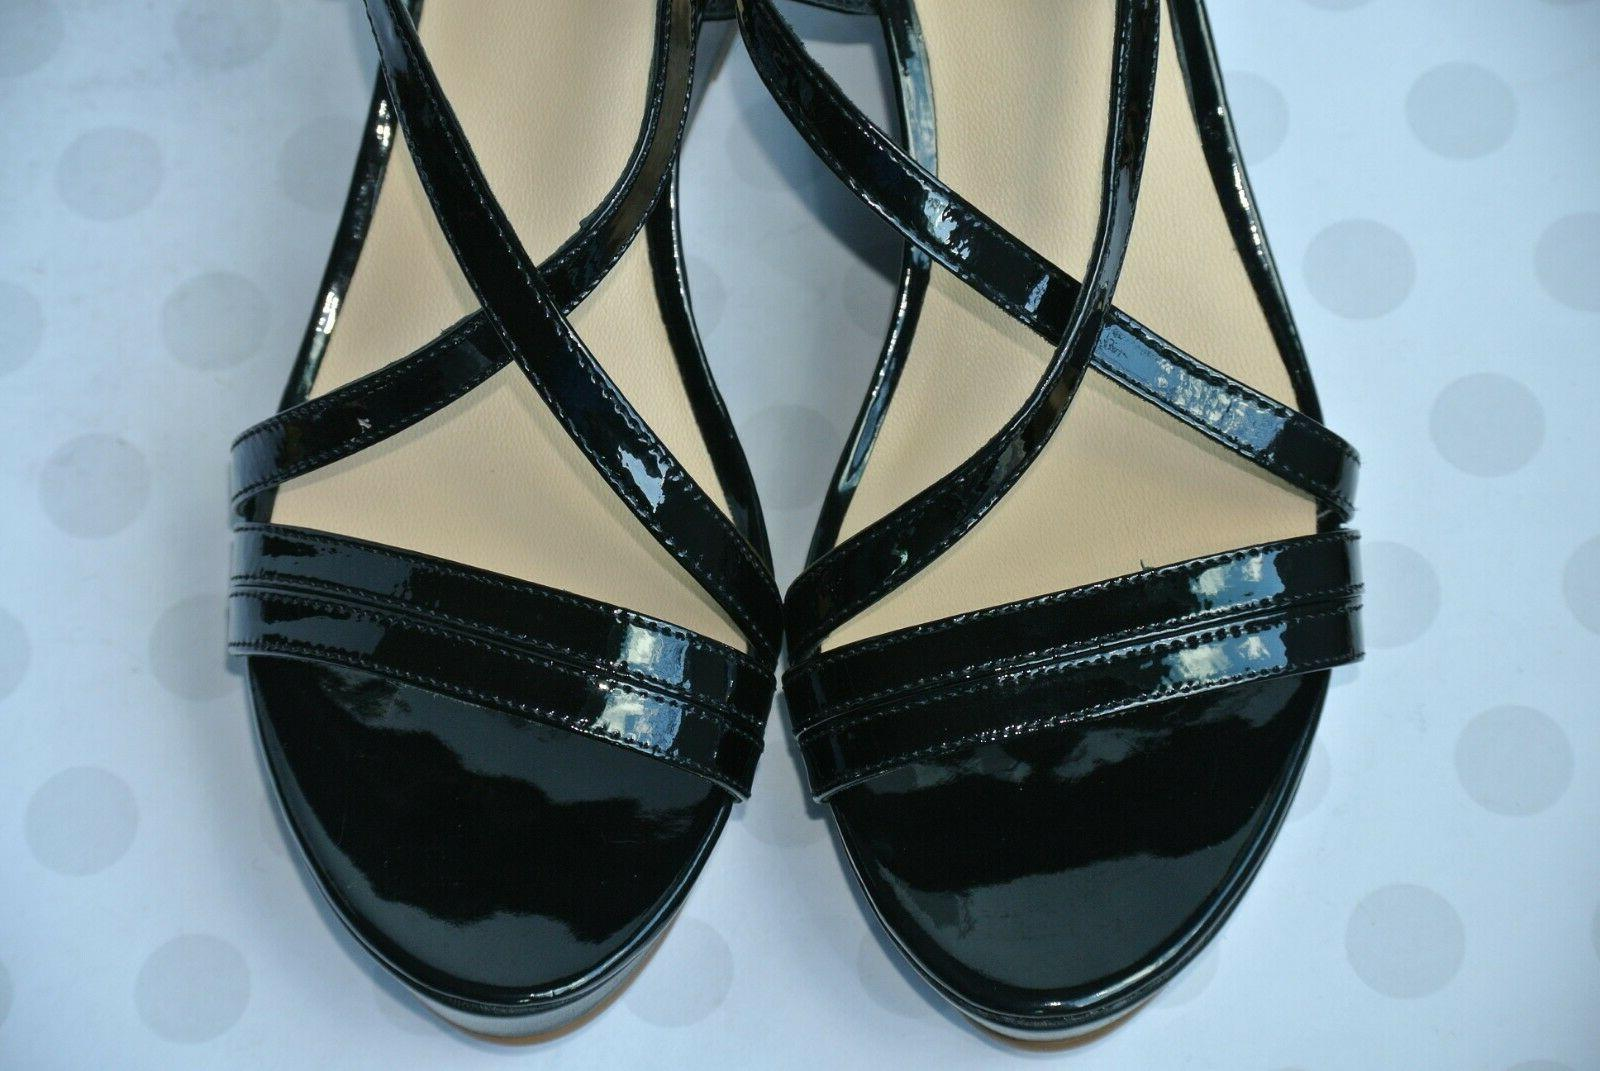 NEW Kate Spade York Black Leather Wedge Sandals